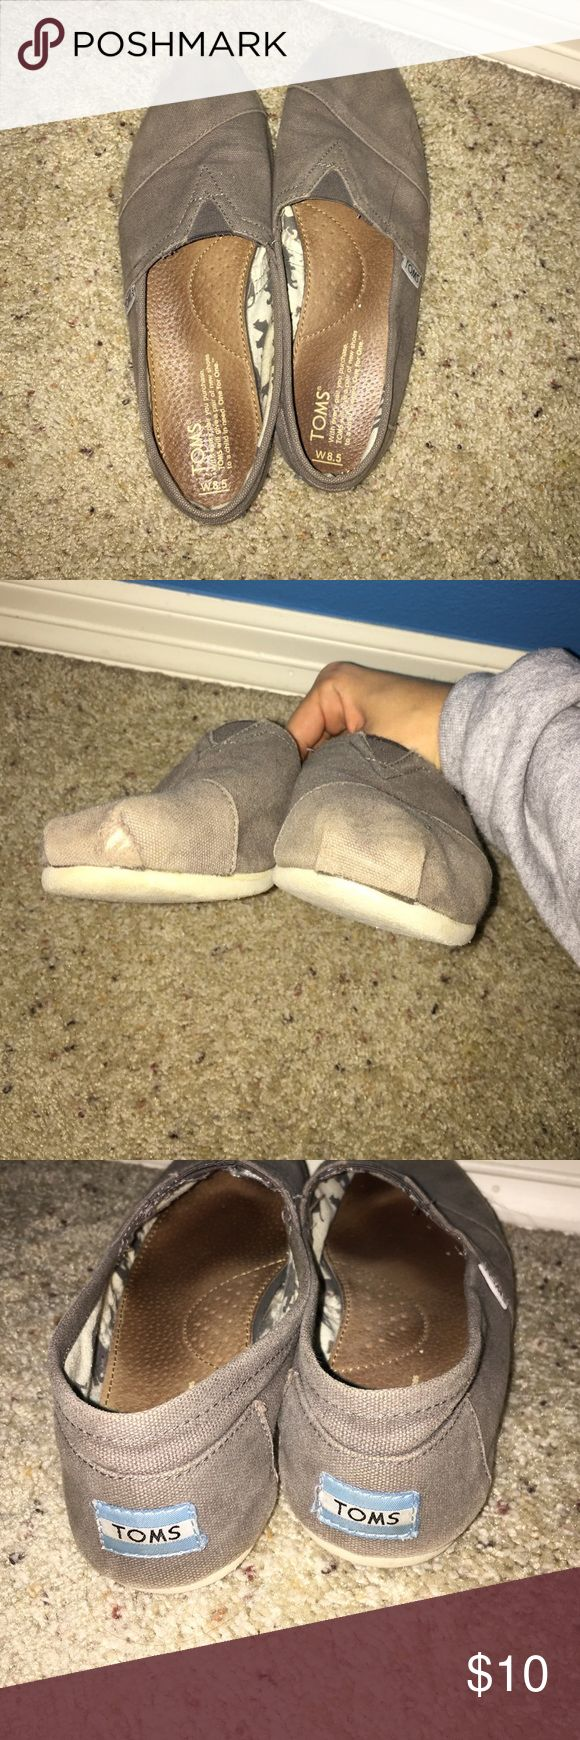 Gray Toms Pretty good condition with a little hole. Comfy for everyday use. TOMS Shoes